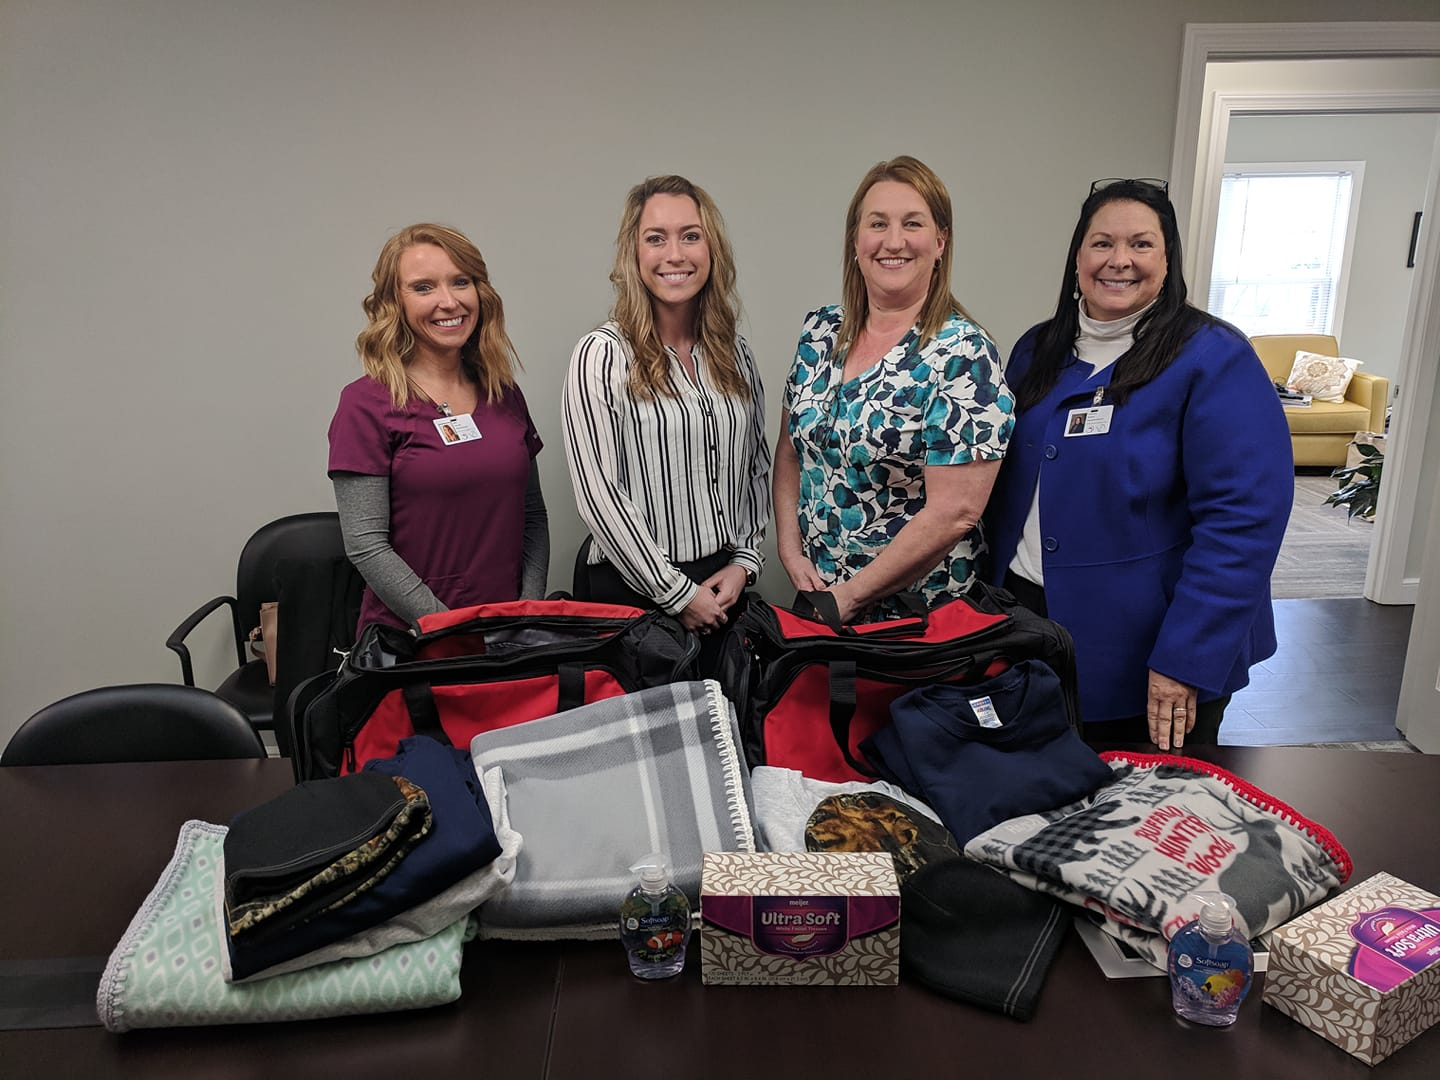 From left: Home Health Nurse Nikki Frey, Kimmel Representative Bo Underwood, Hospice Nurse and Elk member Christy Biller, and Hospice Co-ordinator Cathy Browne. These will be given to Hospice patients, veterans, and those family's in need!